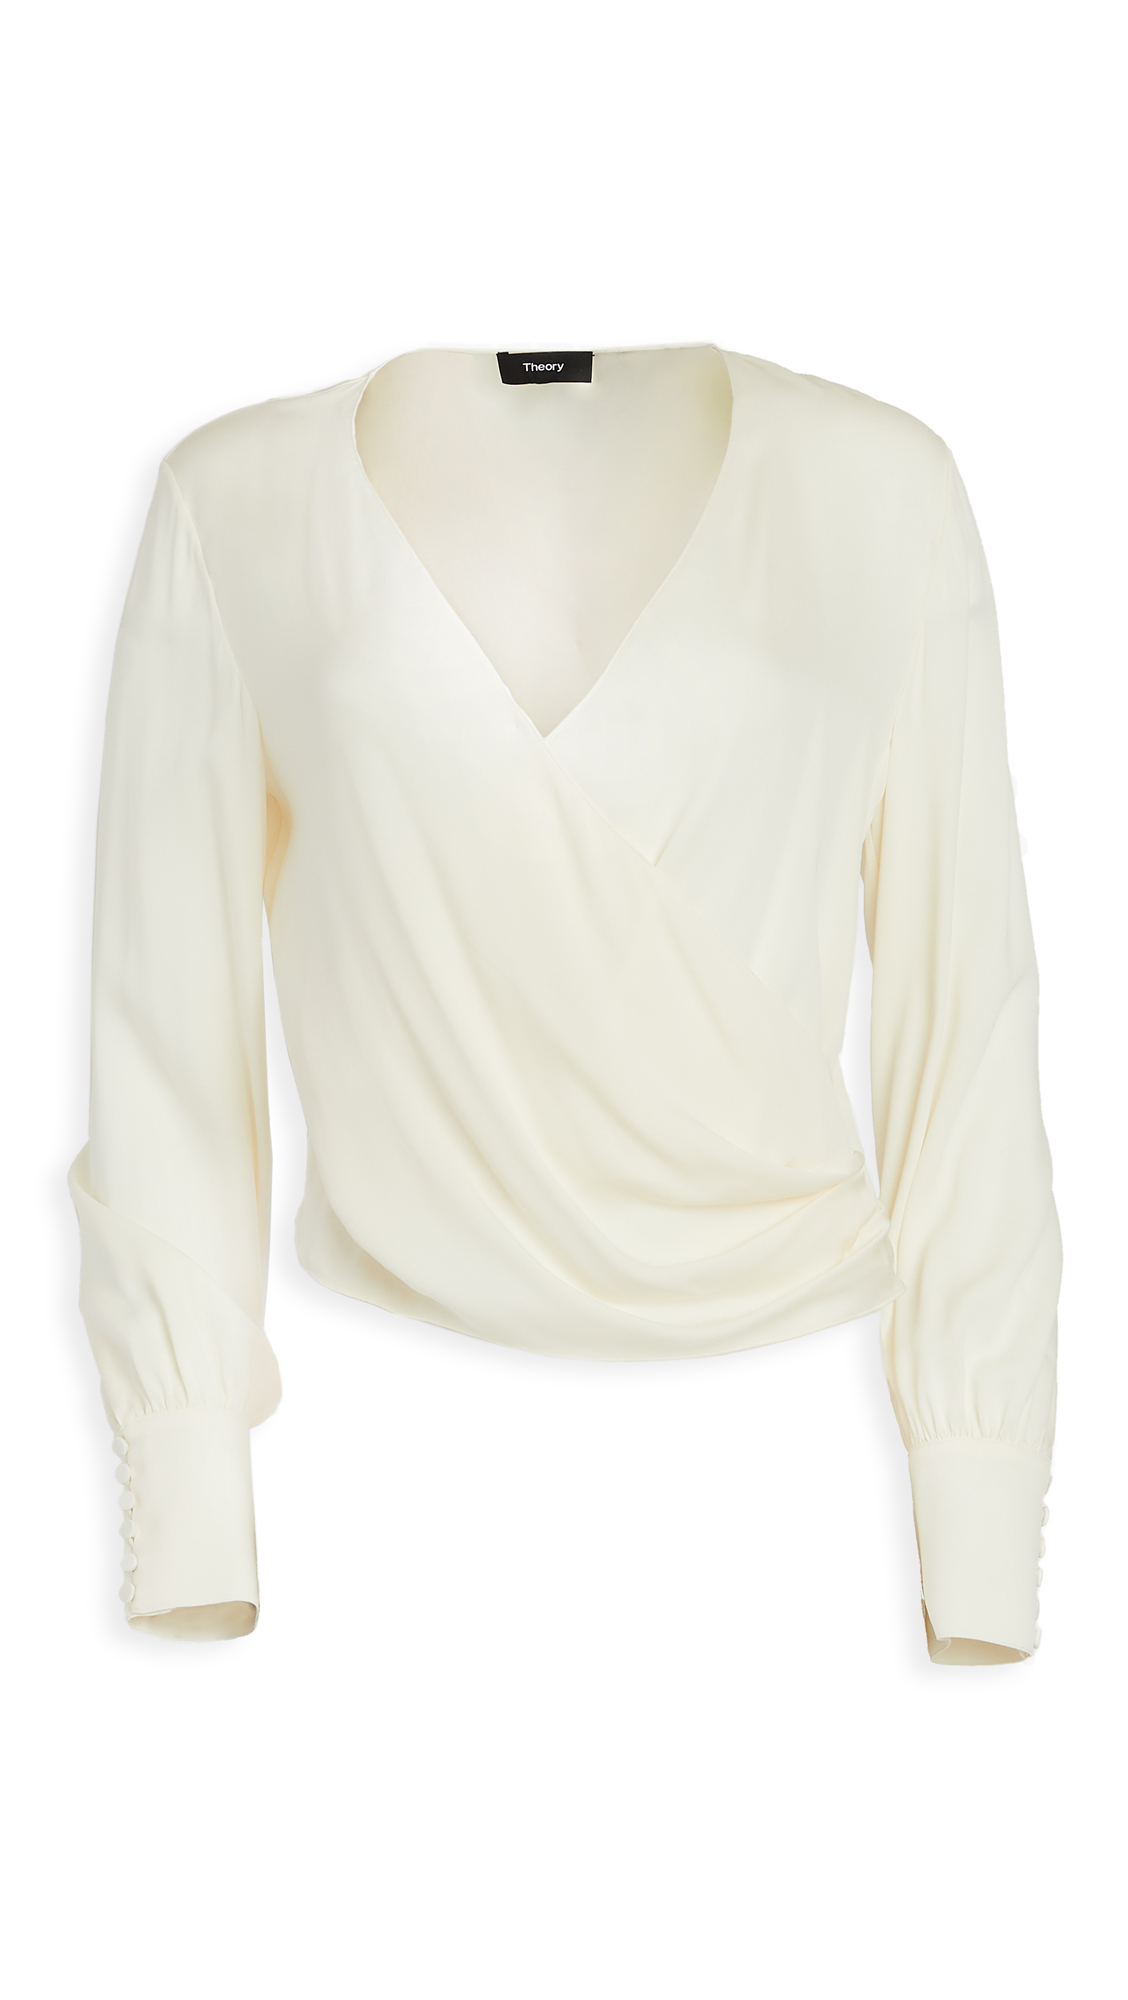 Theory Long Sleeve Wrap Top - 50% Off Sale